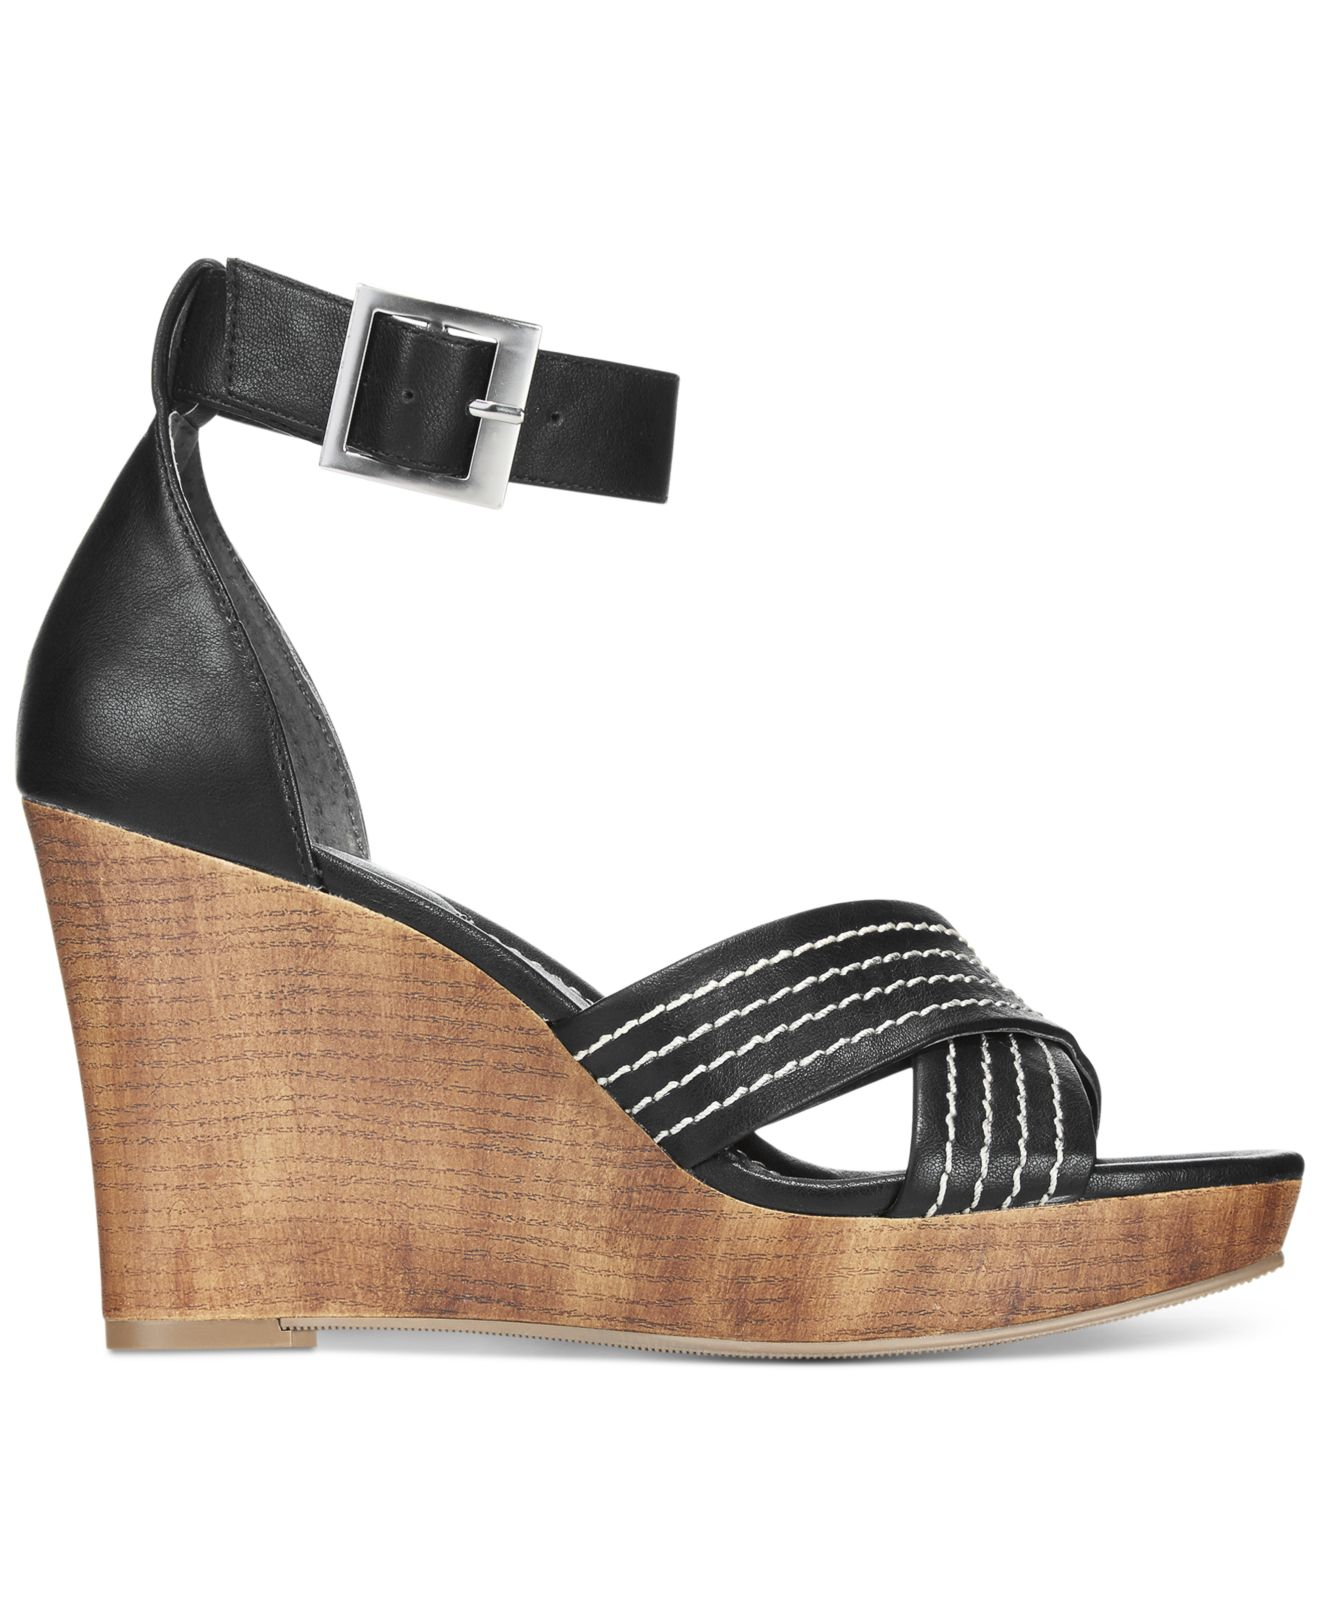 style co raynaa platform wedge sandals only at macy s